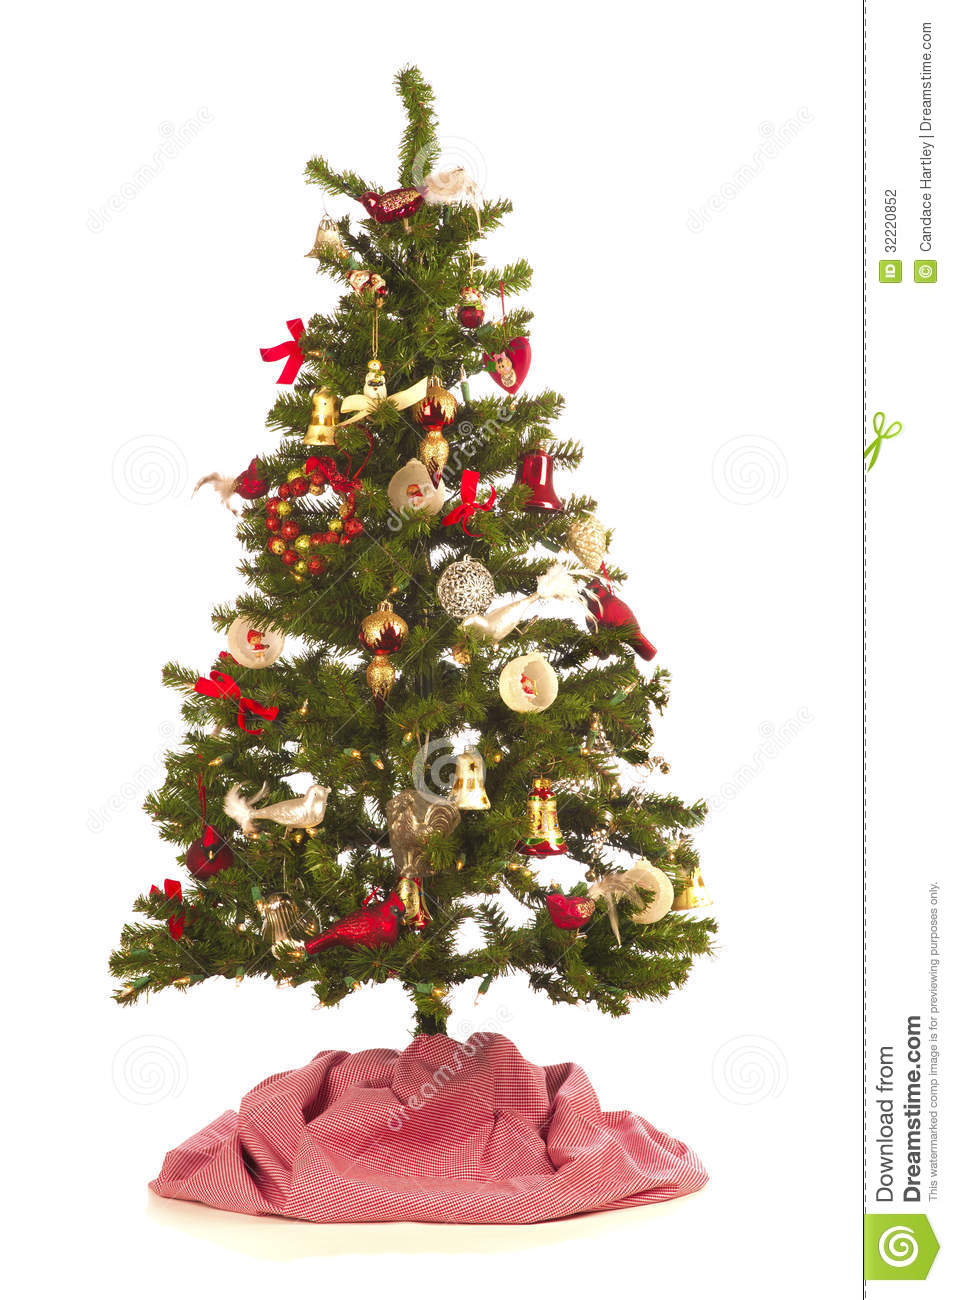 Delightful Christmas Tree With Festive Decorations, Antique And New, On White  Background With A Red And White Tree Skirt